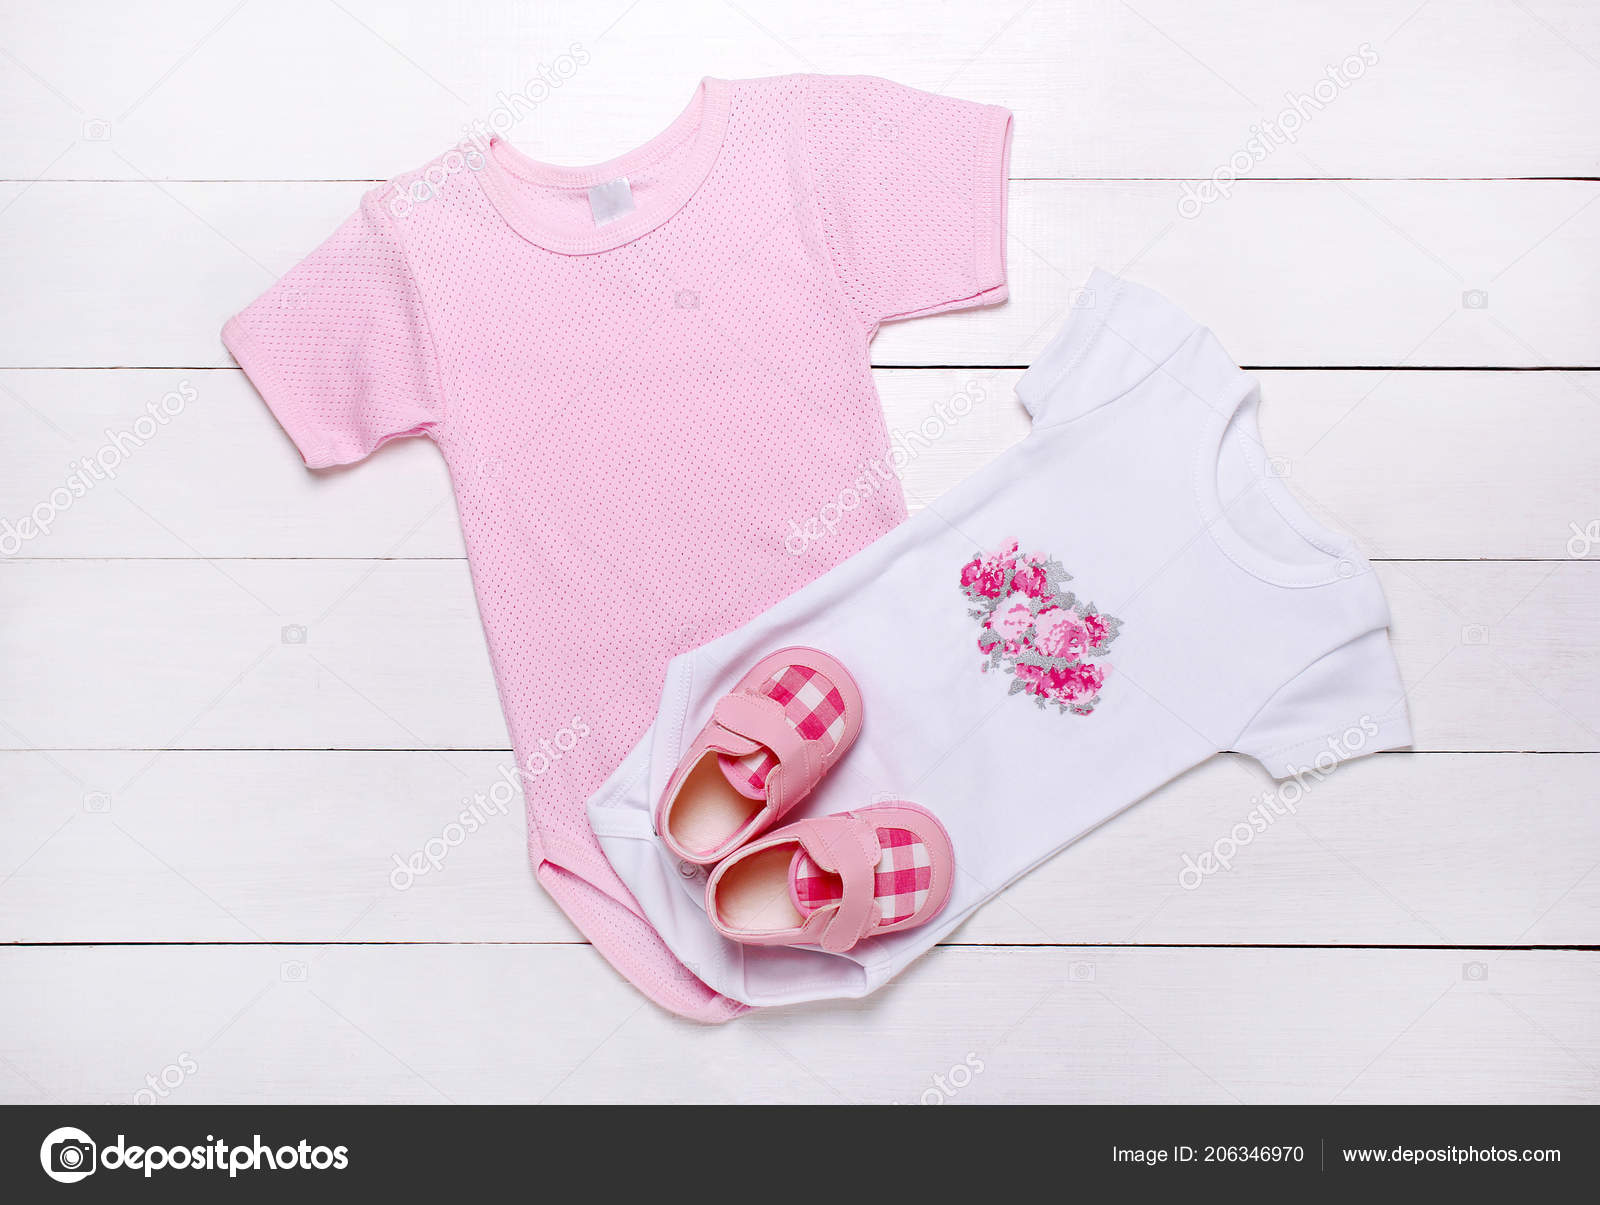 c29fbf0f6be1 Baby Clothes Newborn Girl White Background — Stock Photo ...